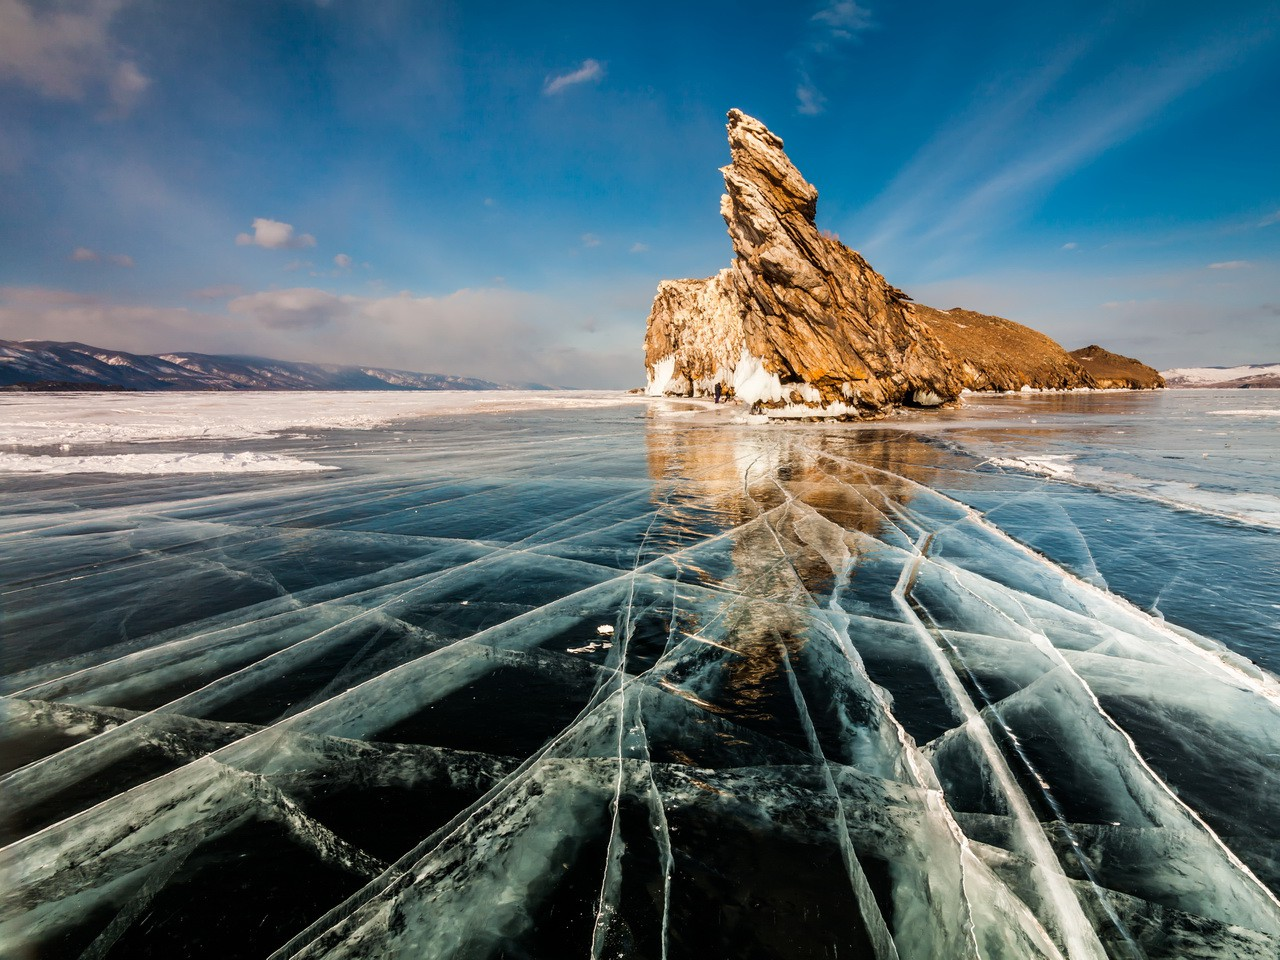 The source of our product, Siberian miracle - Baikal Lake